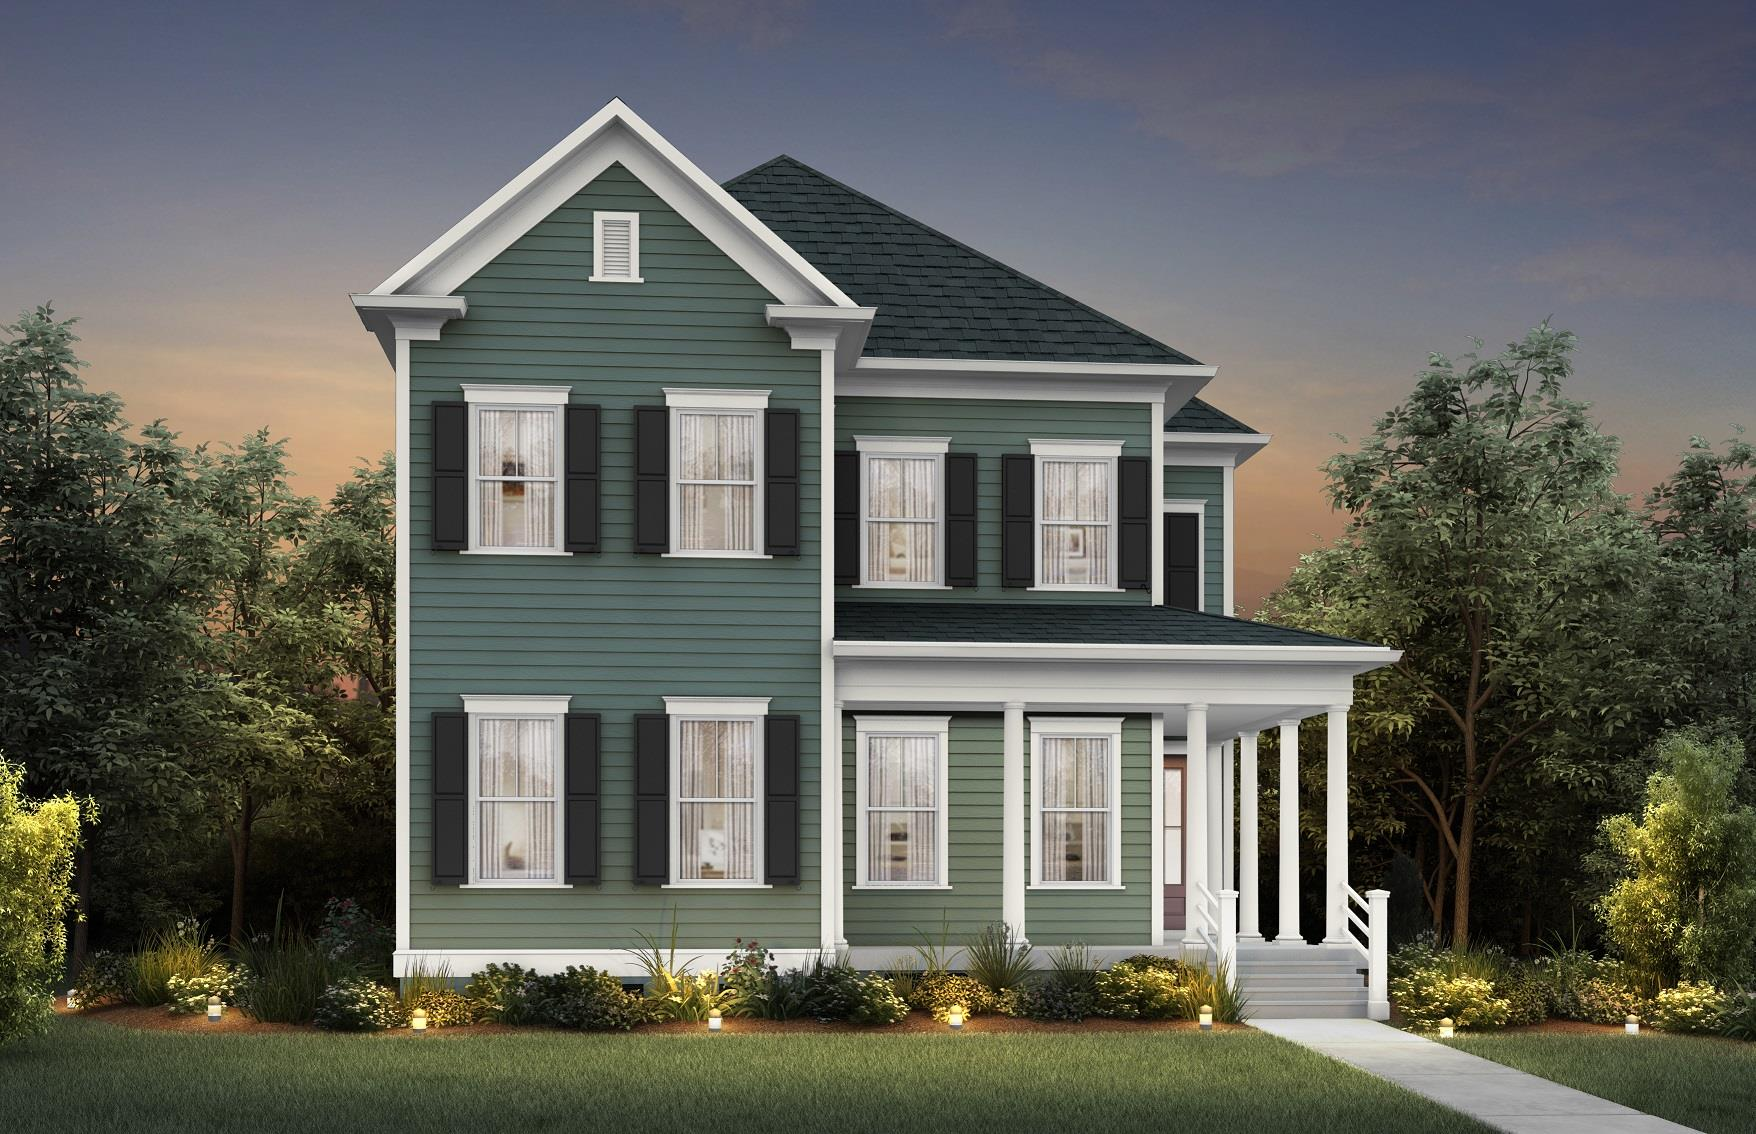 9563 Dresden Square Lot 254, Brentwood, TN 37027